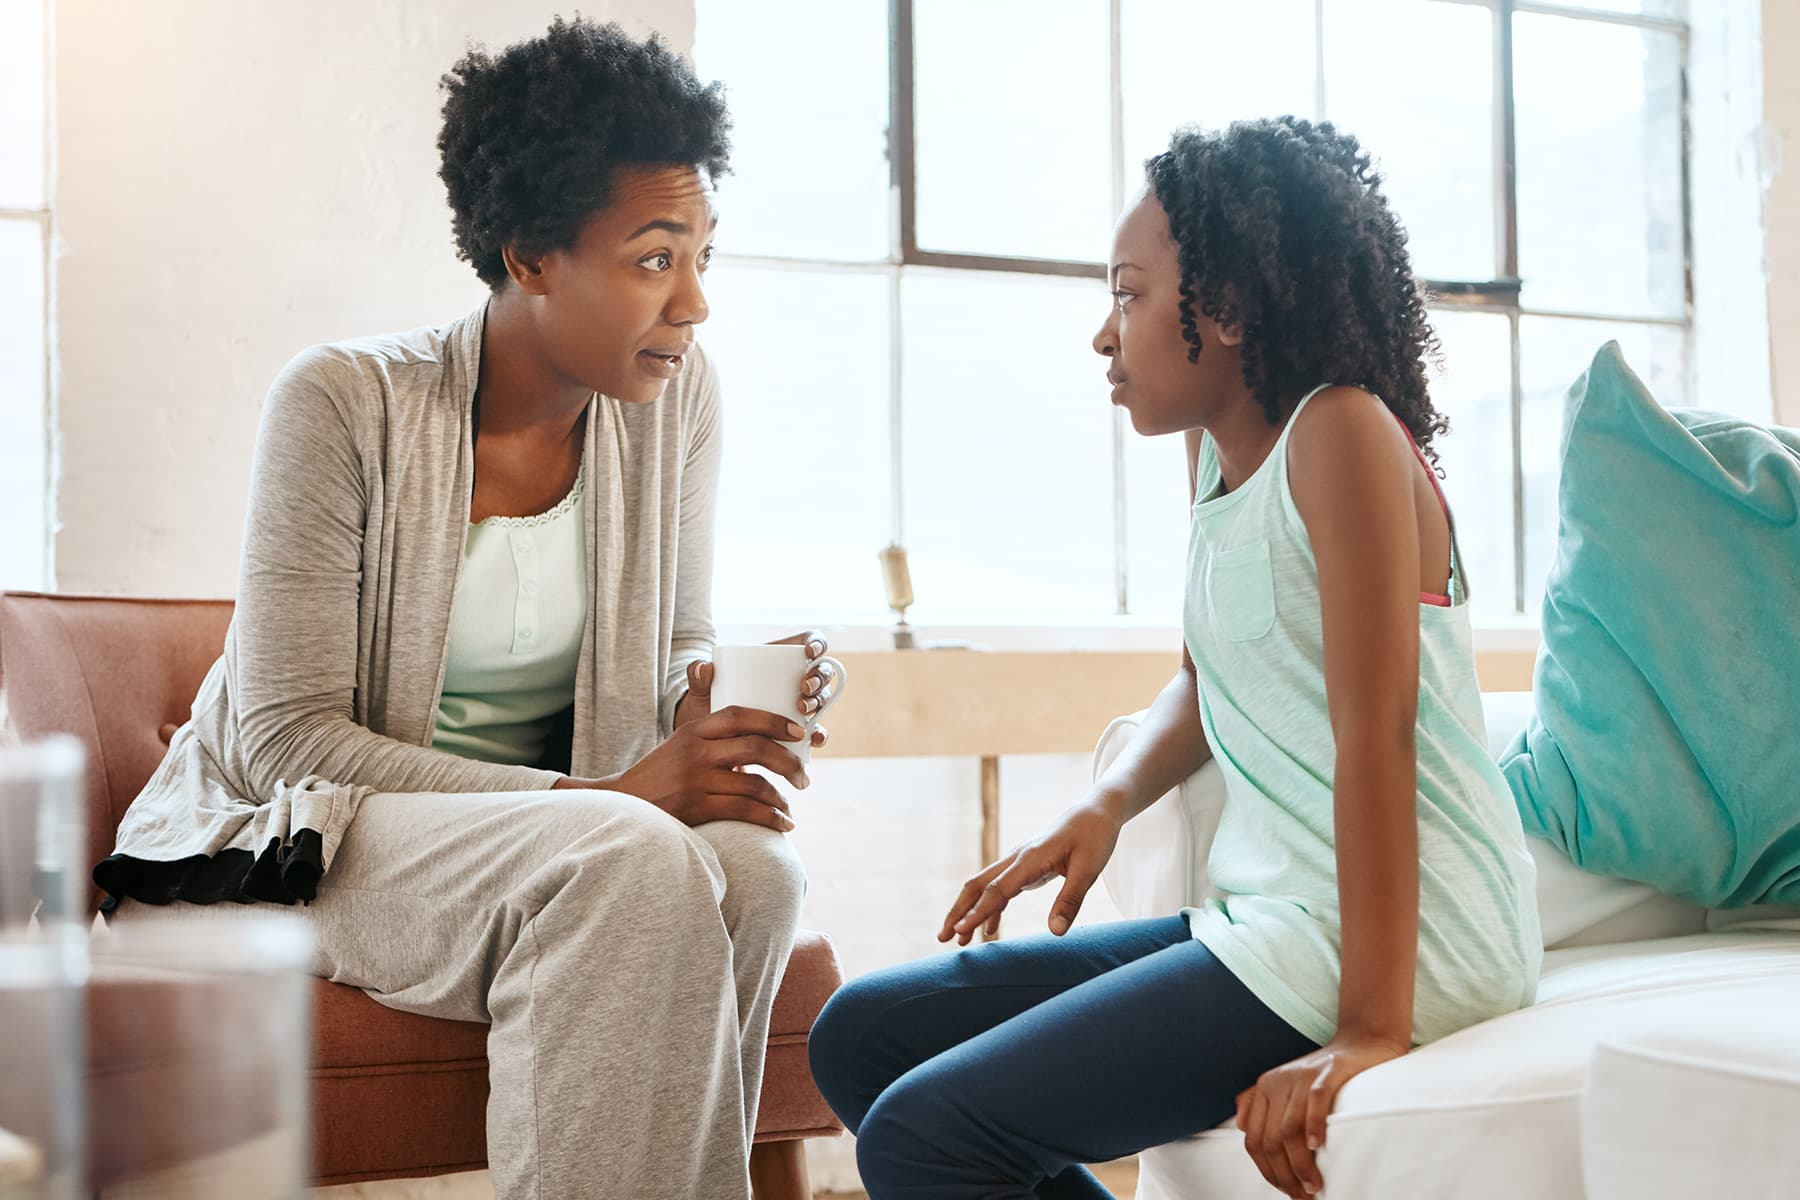 Many children with mental health problems remain untreated